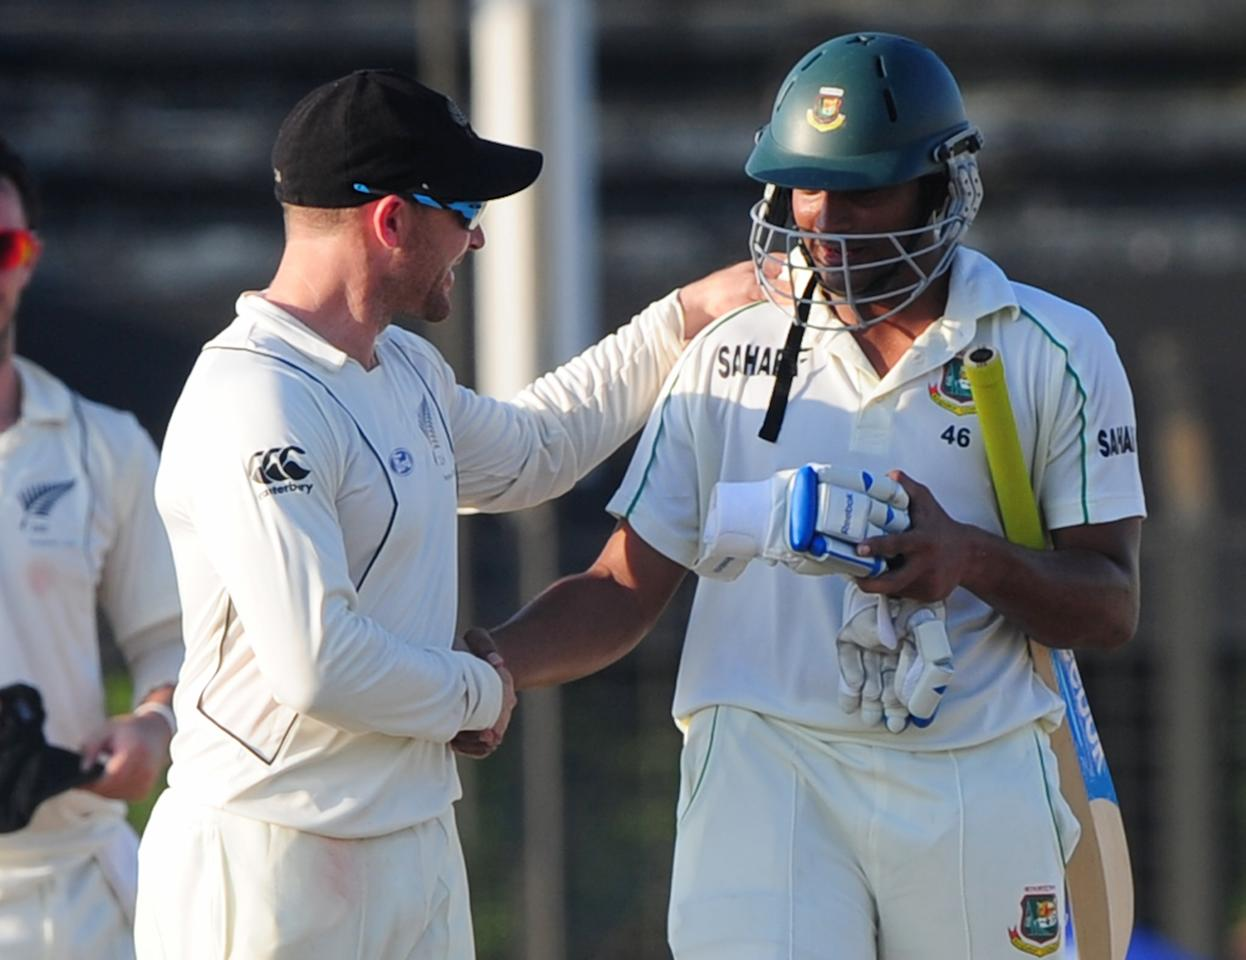 Bangladesh batsman Shakib Al Hasan (R) shakes hands with New Zealand cricket captain Brendon McCullum (L) after the fifth and final day of the first cricket Test match between Bangladesh and New Zealand at The Zahur Ahmed Chowdhury Stadium in Chittagong on October 13, 2013. AFP PHOTO/Munir uz ZAMAN        (Photo credit should read MUNIR UZ ZAMAN/AFP/Getty Images)